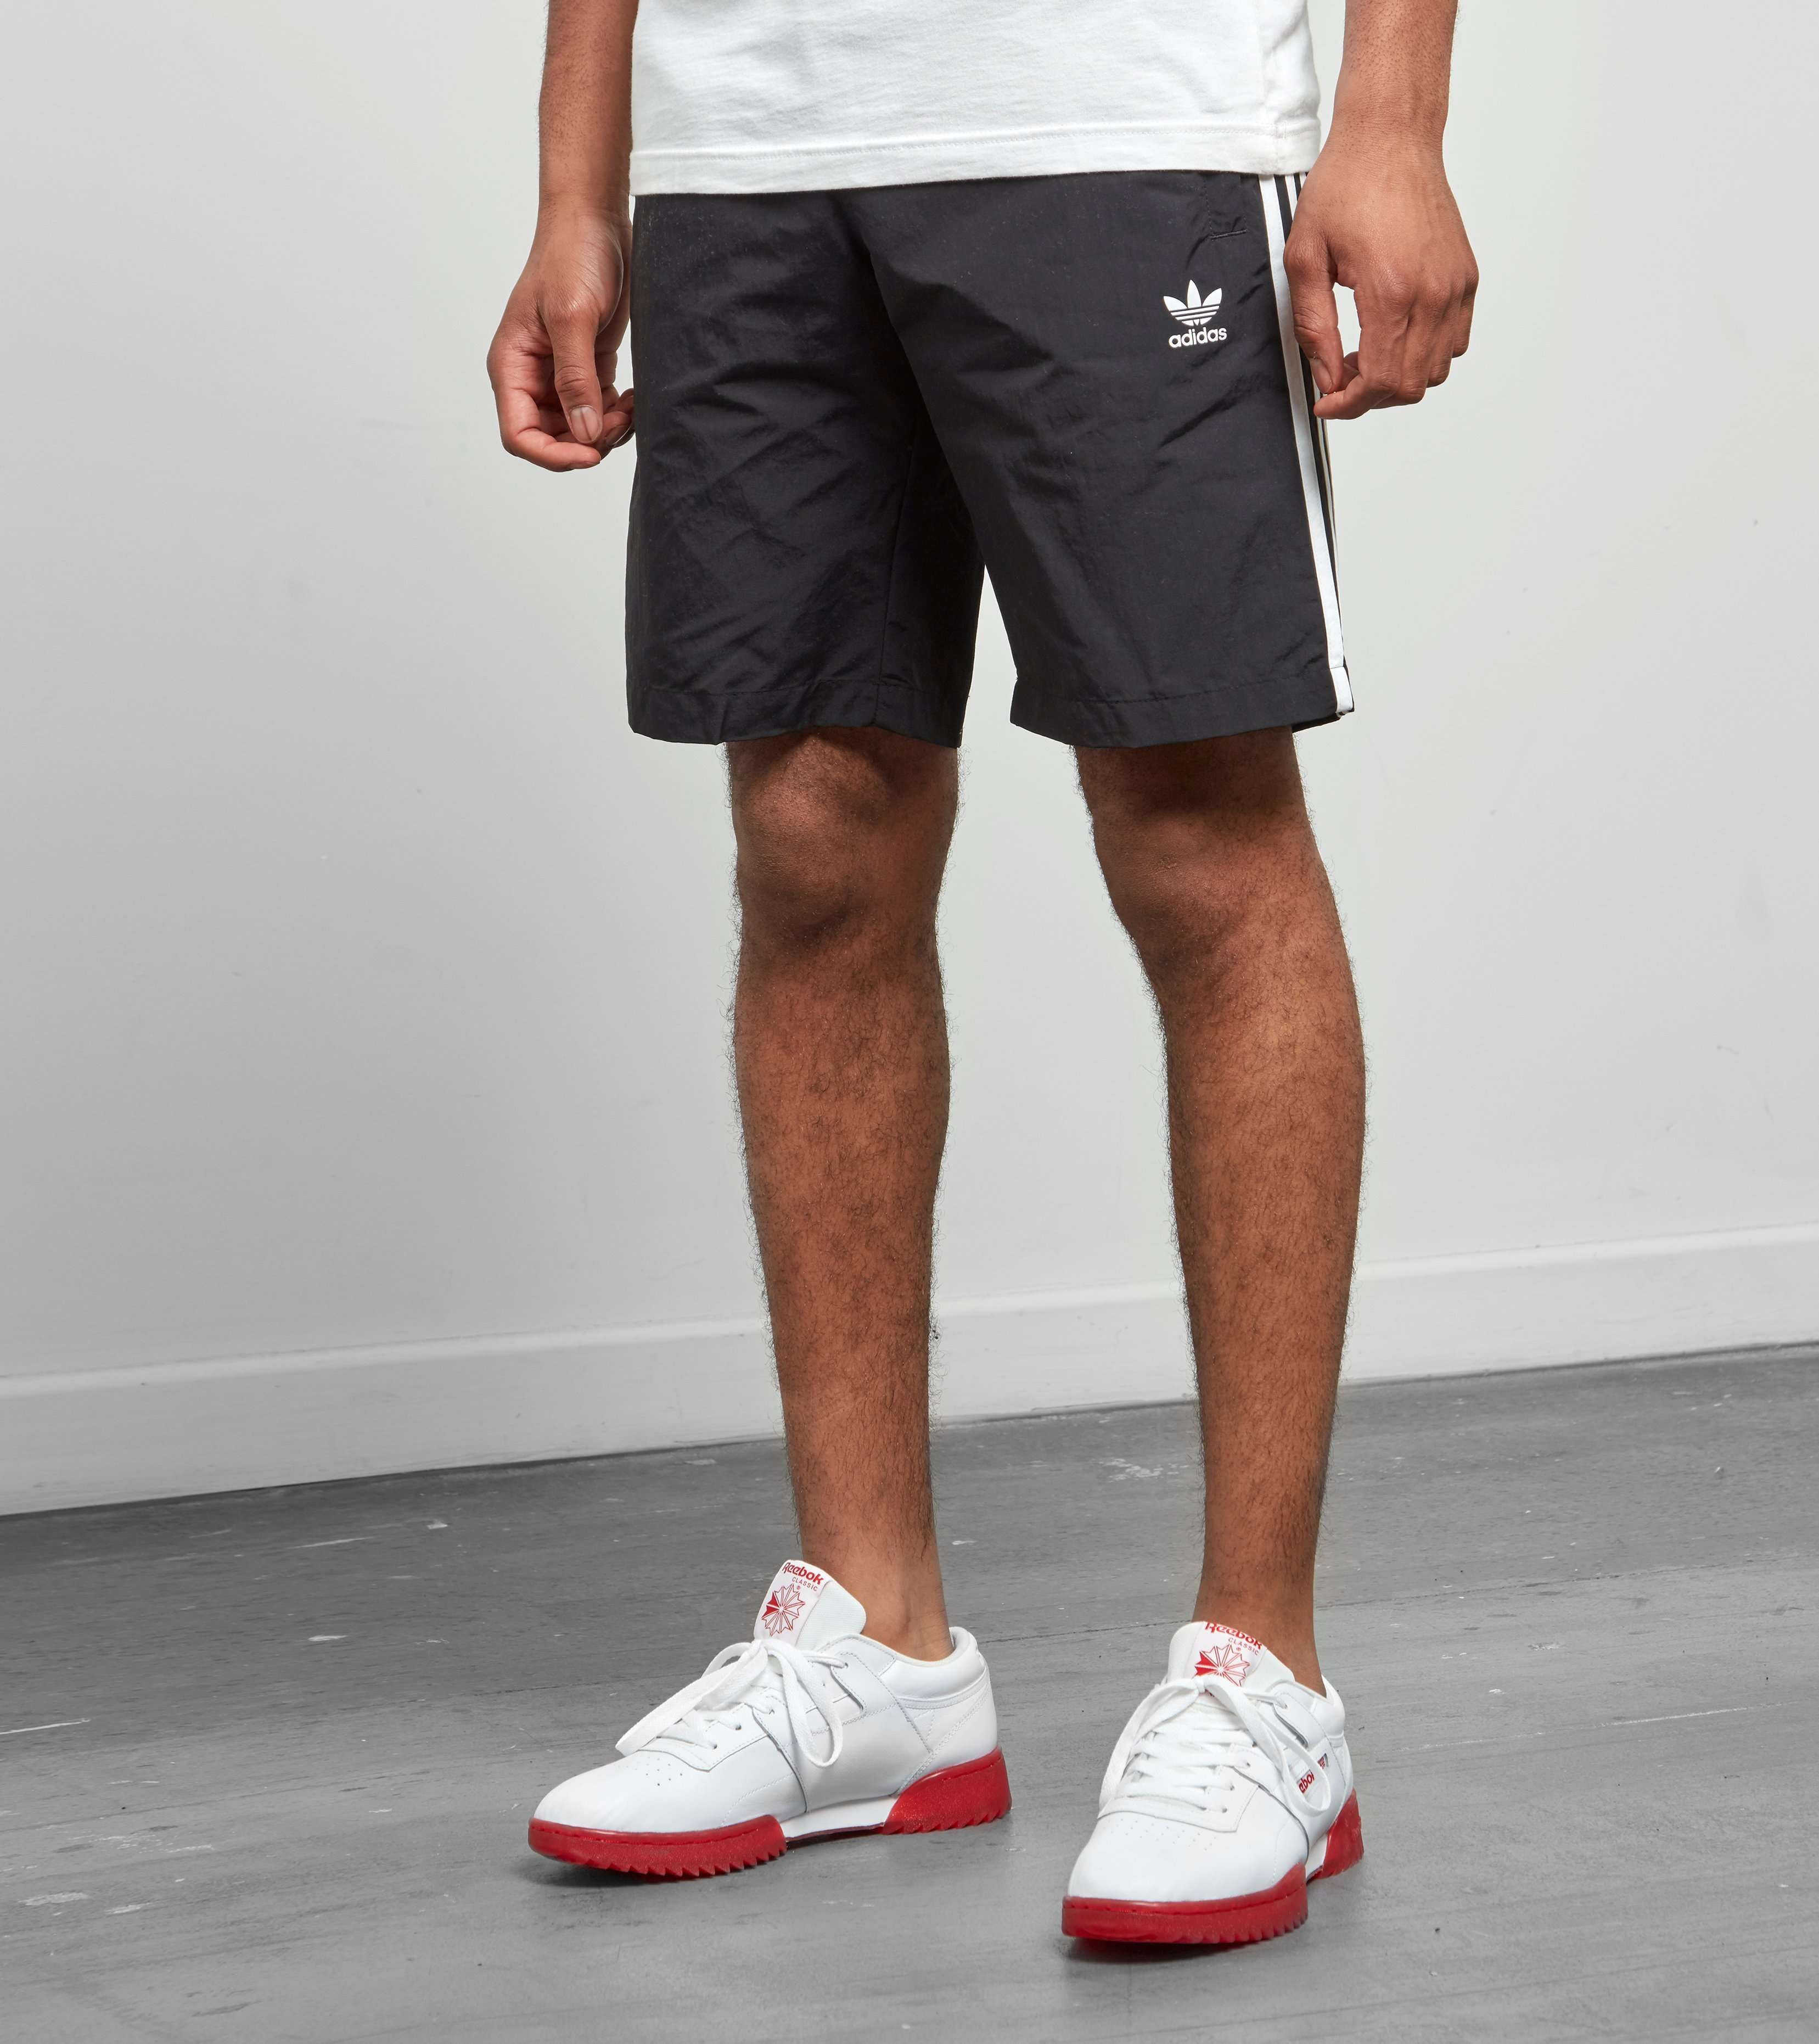 cdd3ad0edb8f0 adidas Originals 3 Stripe Swim Shorts - find out more on our site. Find the  freshest in trainers and clothing online now.